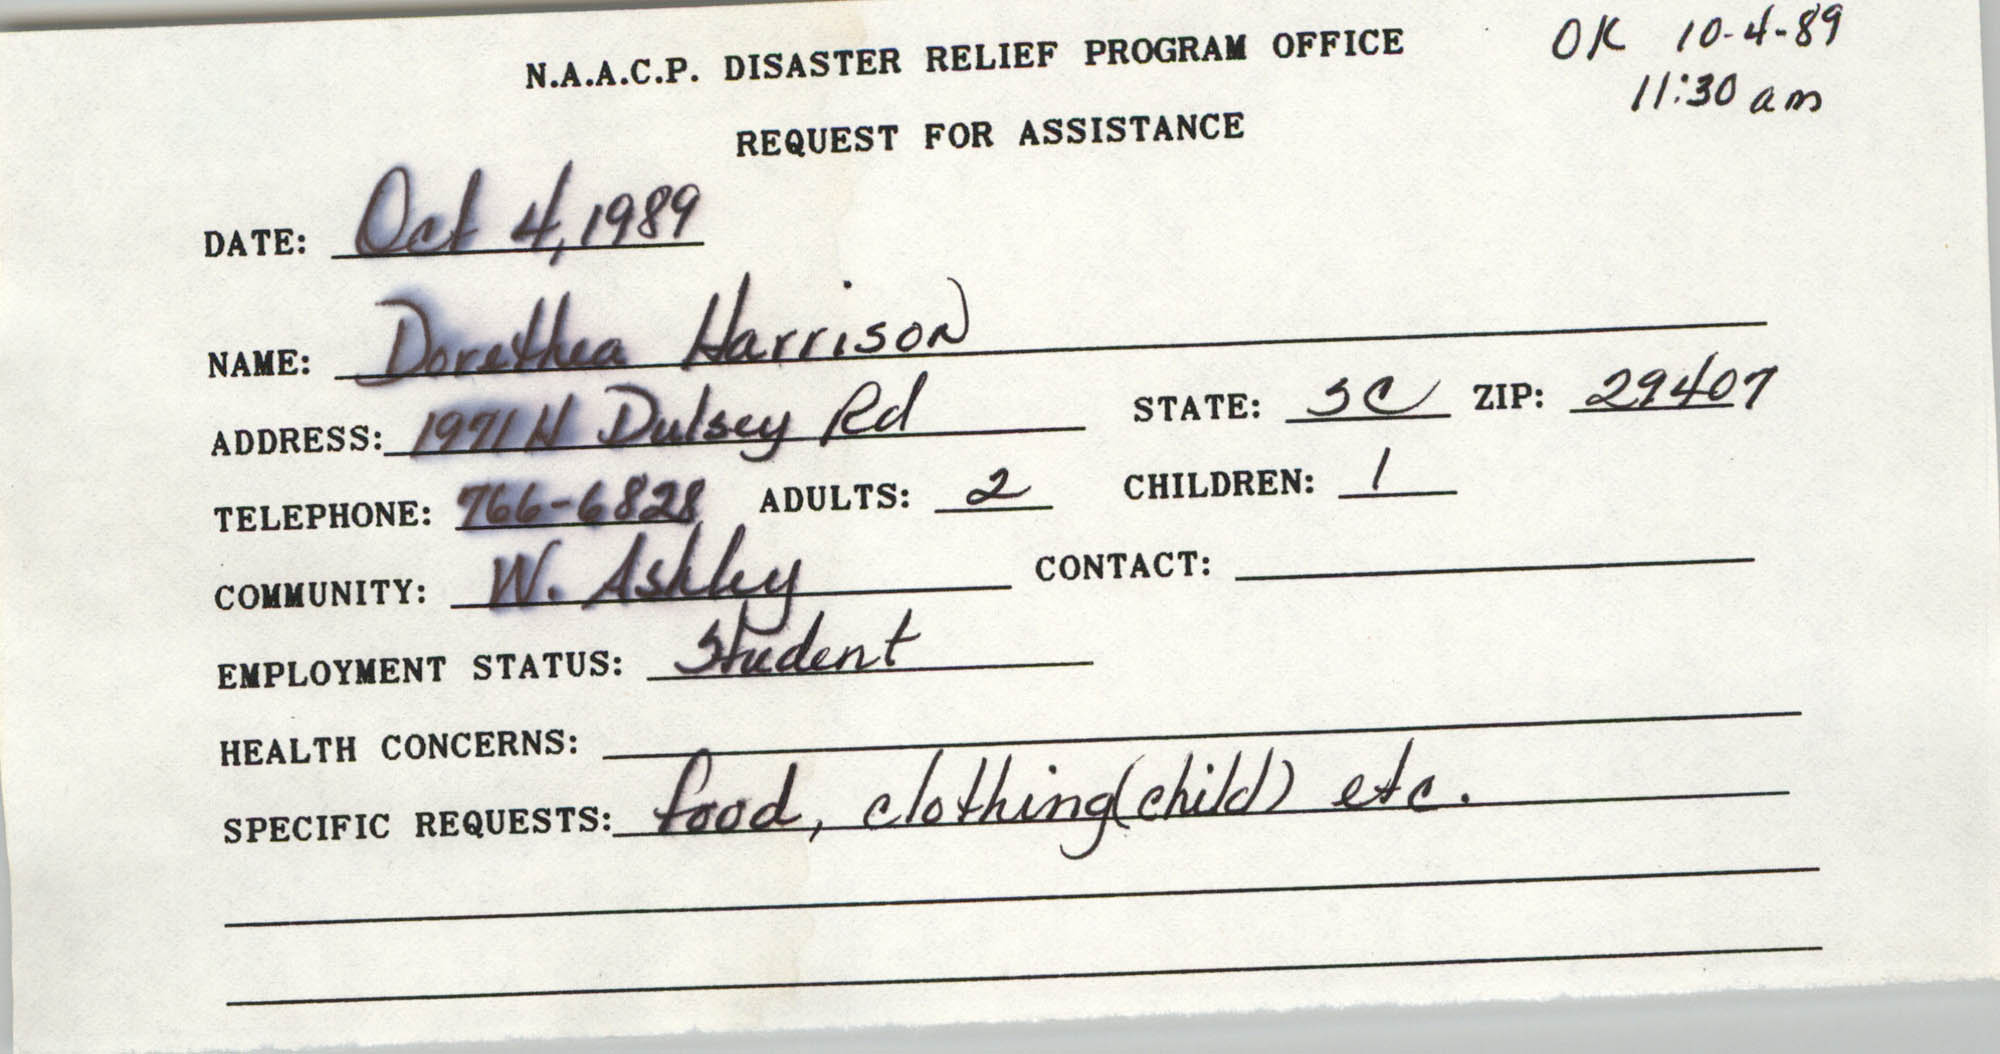 NAACP Disaster Relief Program Office, Hurricane Huge Requests for Assistance, 1989, Page 8